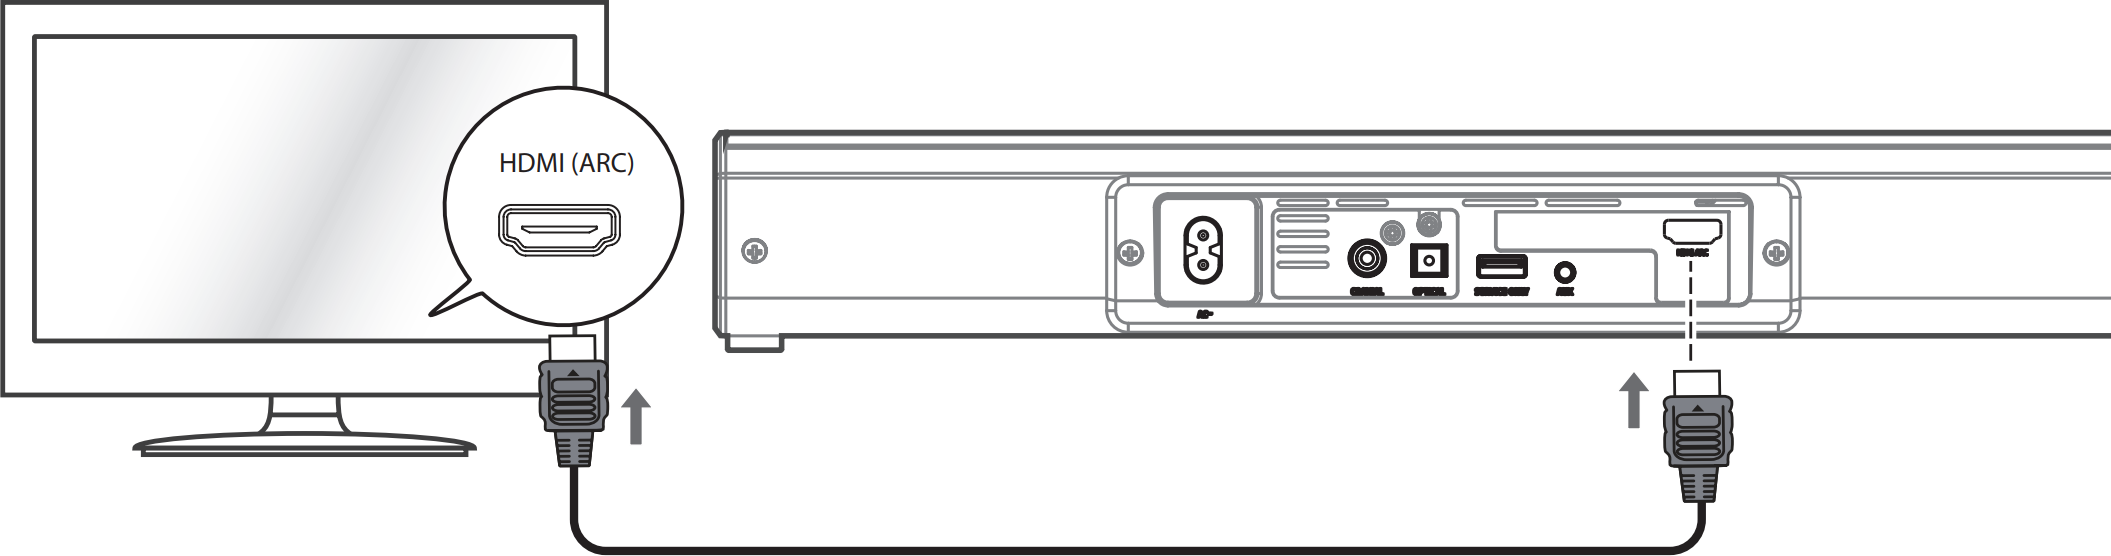 Diagram of connecting HDMI cable to television and soundbar